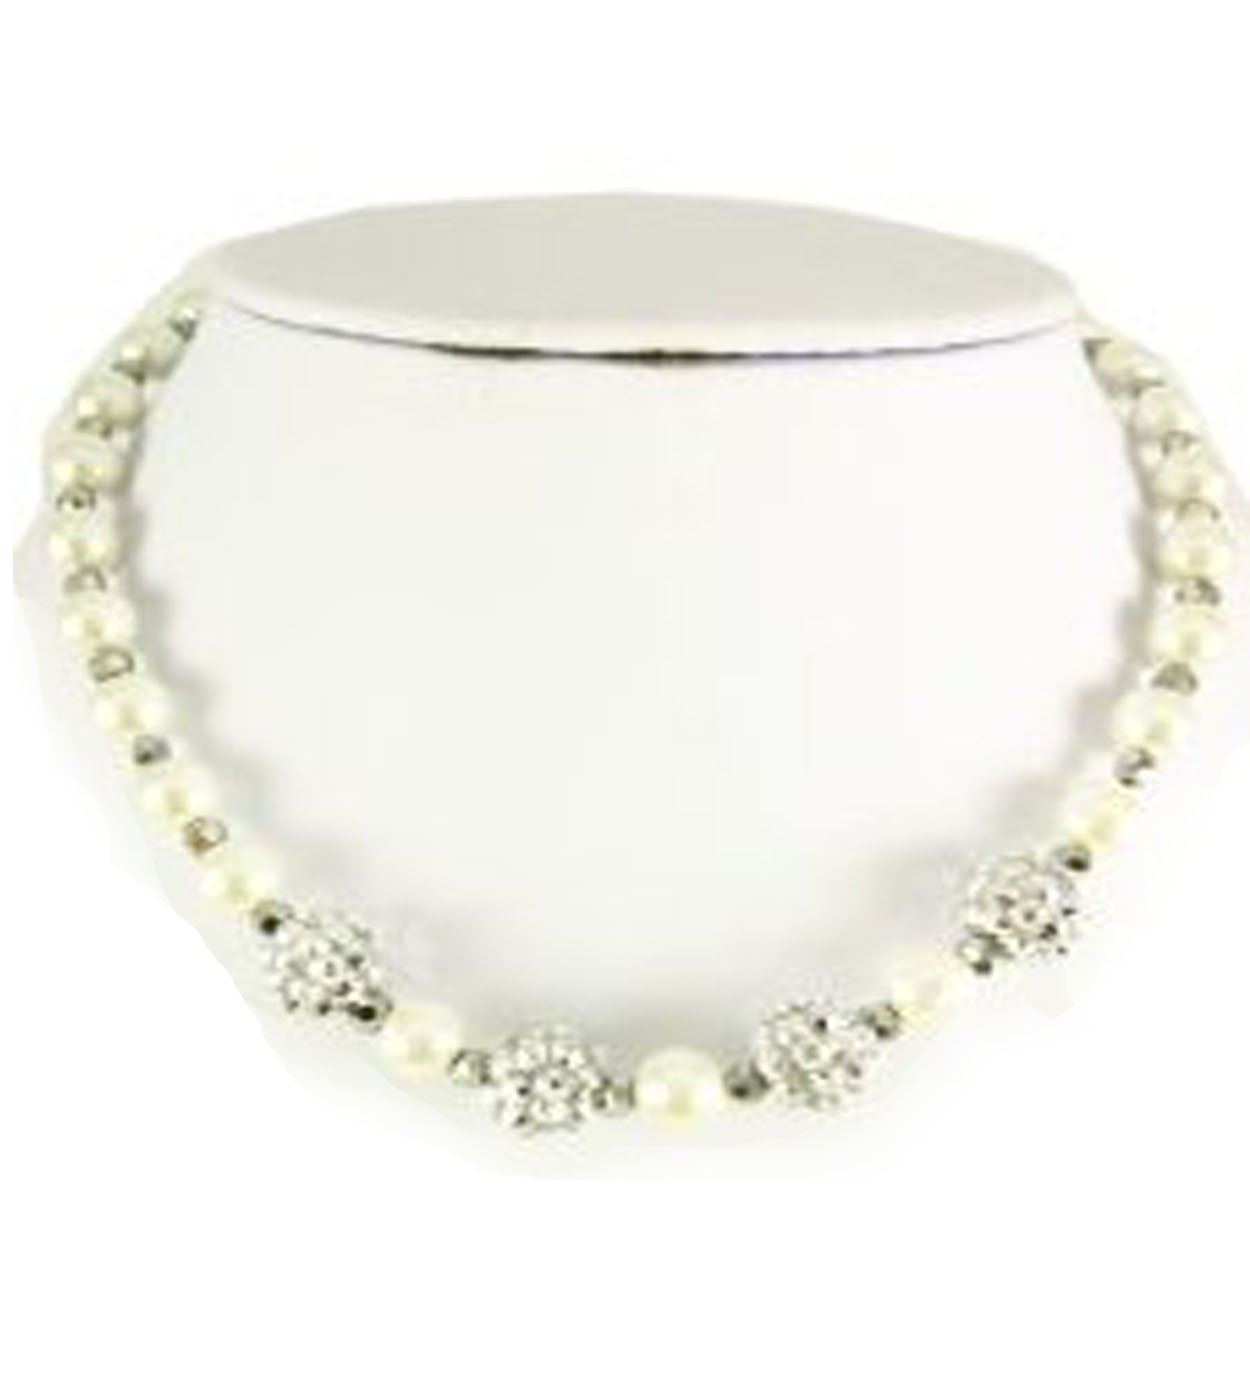 V G S Eternity Fashions Fashion Jewelry ~ Kids Pearls Set~ White Imitation Pearls Accented with Crystals (White)